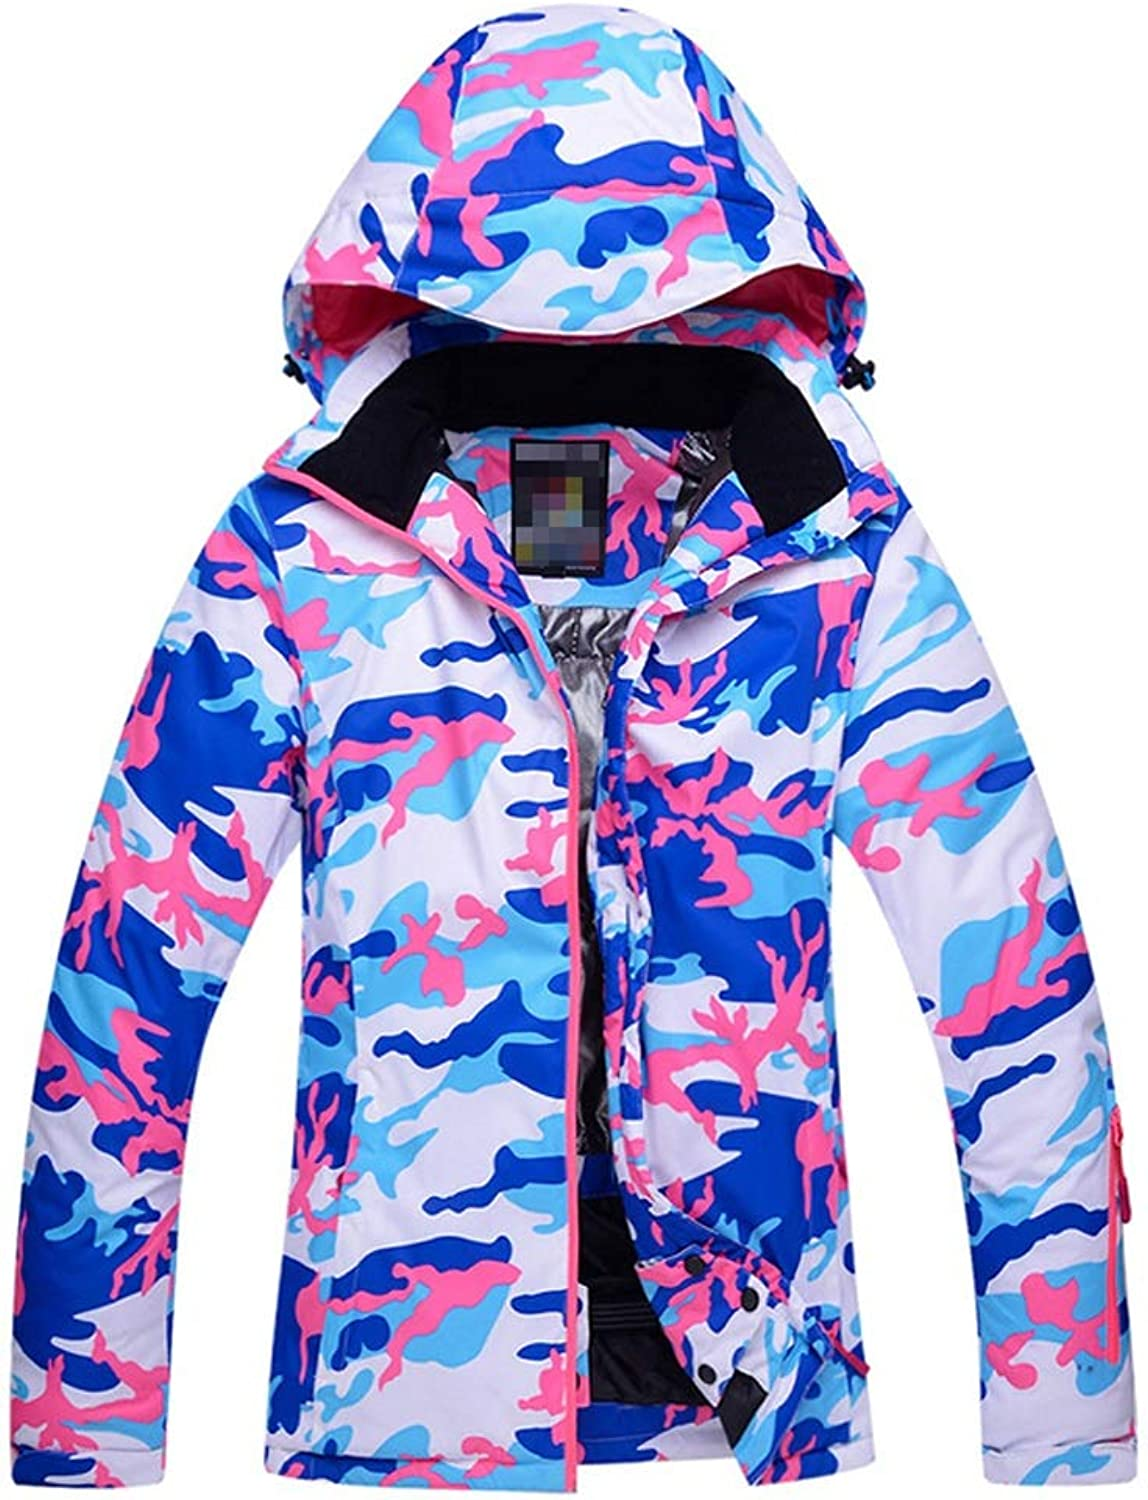 Warm ski suit Winter Coat Outdoor Jacket With Removable Hood, Storage Pockets Windproof and cold-proof warm jacket (color   bluee camouflage, Size   S)